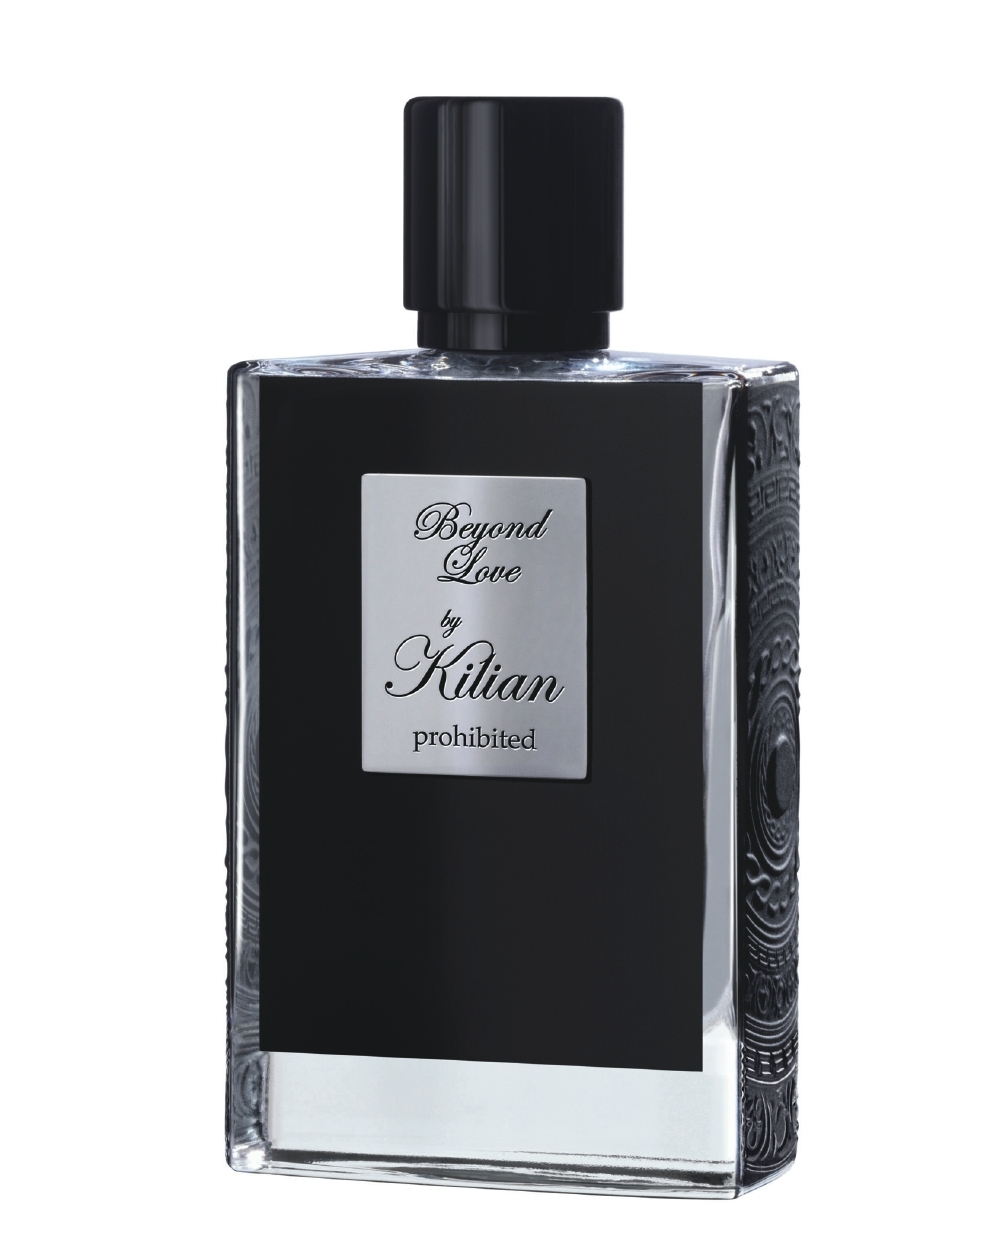 BEYOND LOVE by KILIAN 5ml Travel Spray Perfume Tuberose Ambergris Prohibited